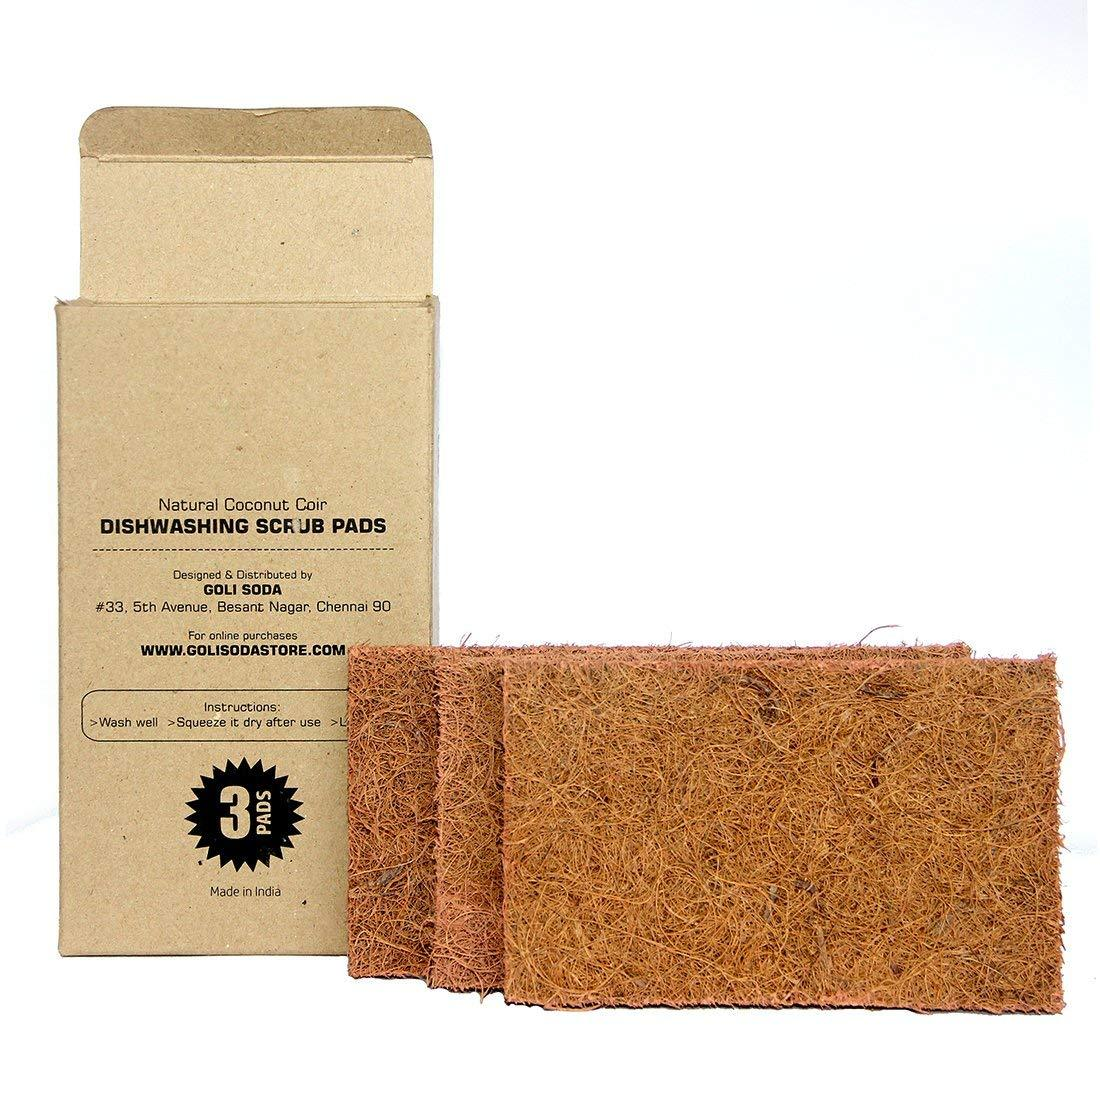 Natural Coconut Coir Dish washing Scrub Pads (Set of3)